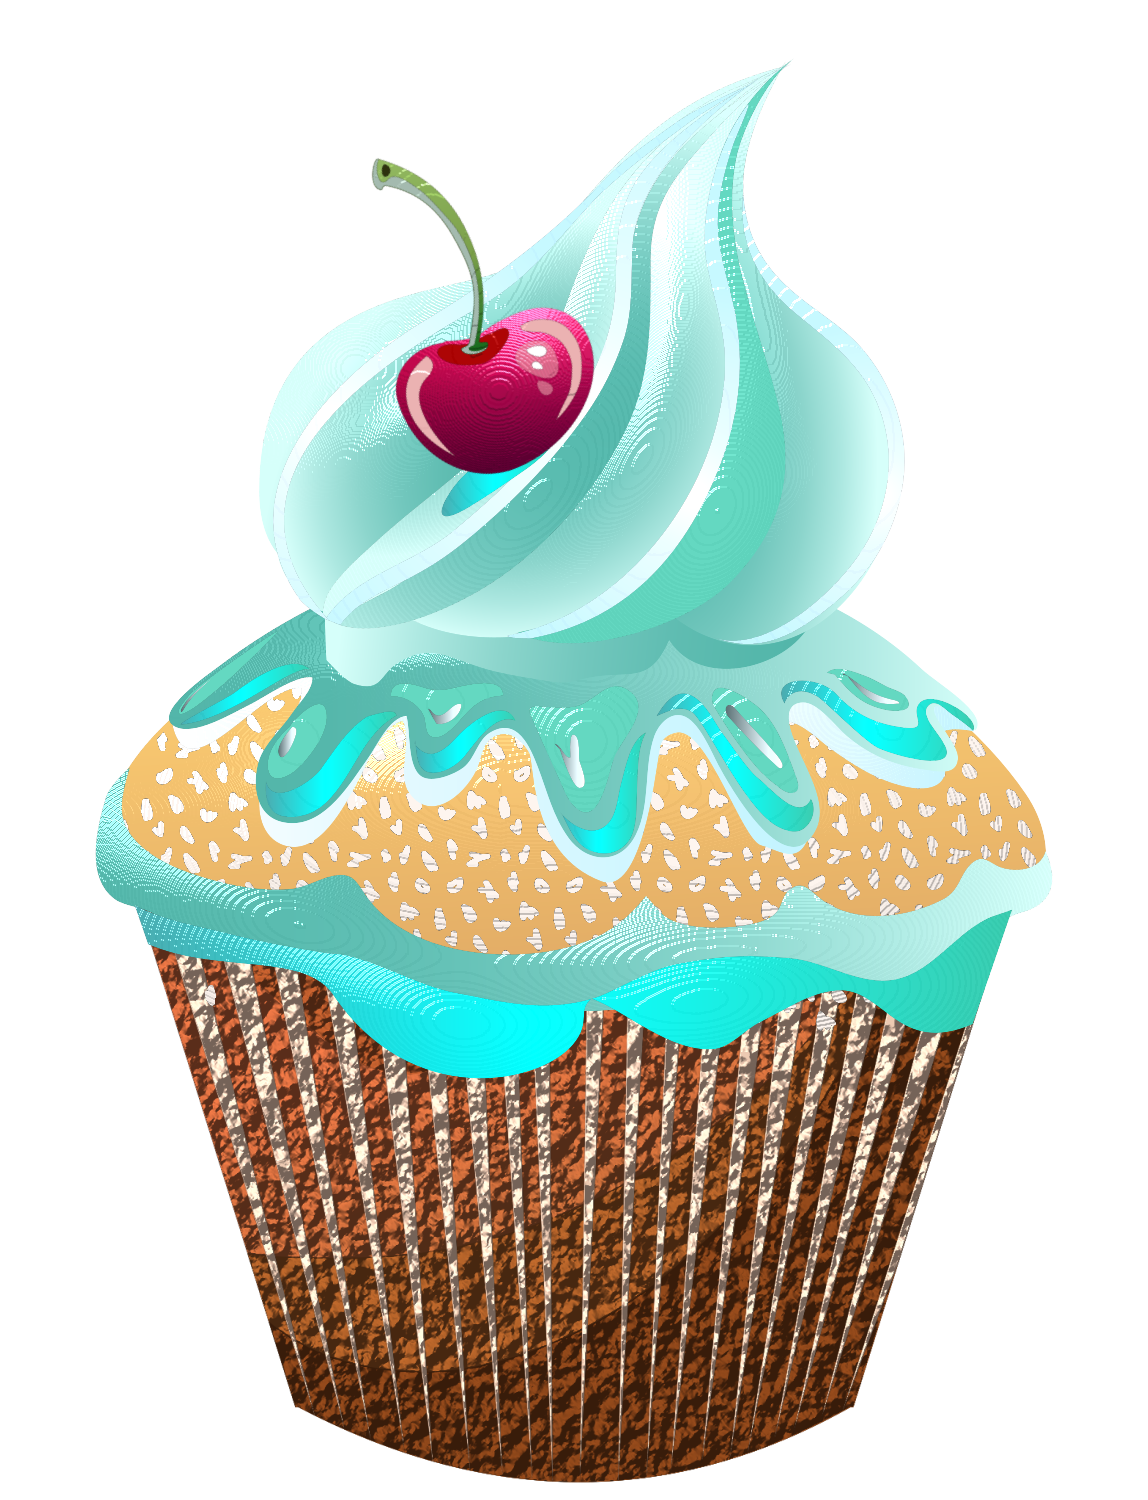 clipart royalty free stock drawing cupcake realistic #93961322